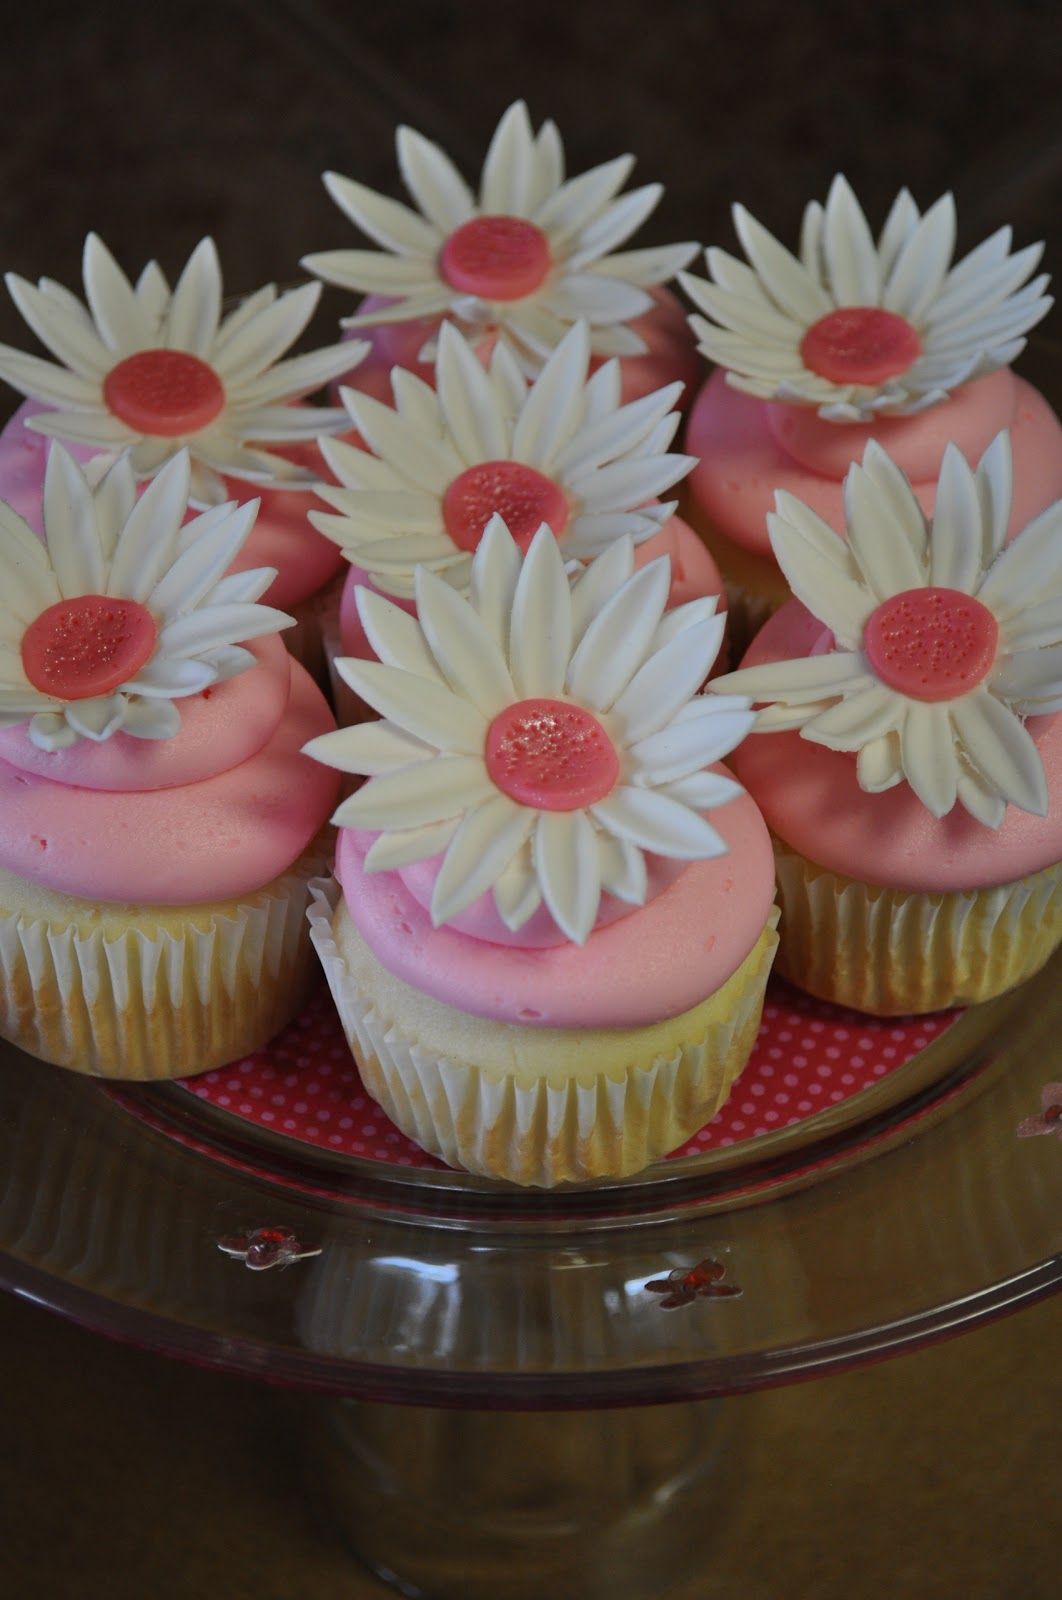 Morgans Cakes Spring Cupcakes With Fondant Daisy Flowers